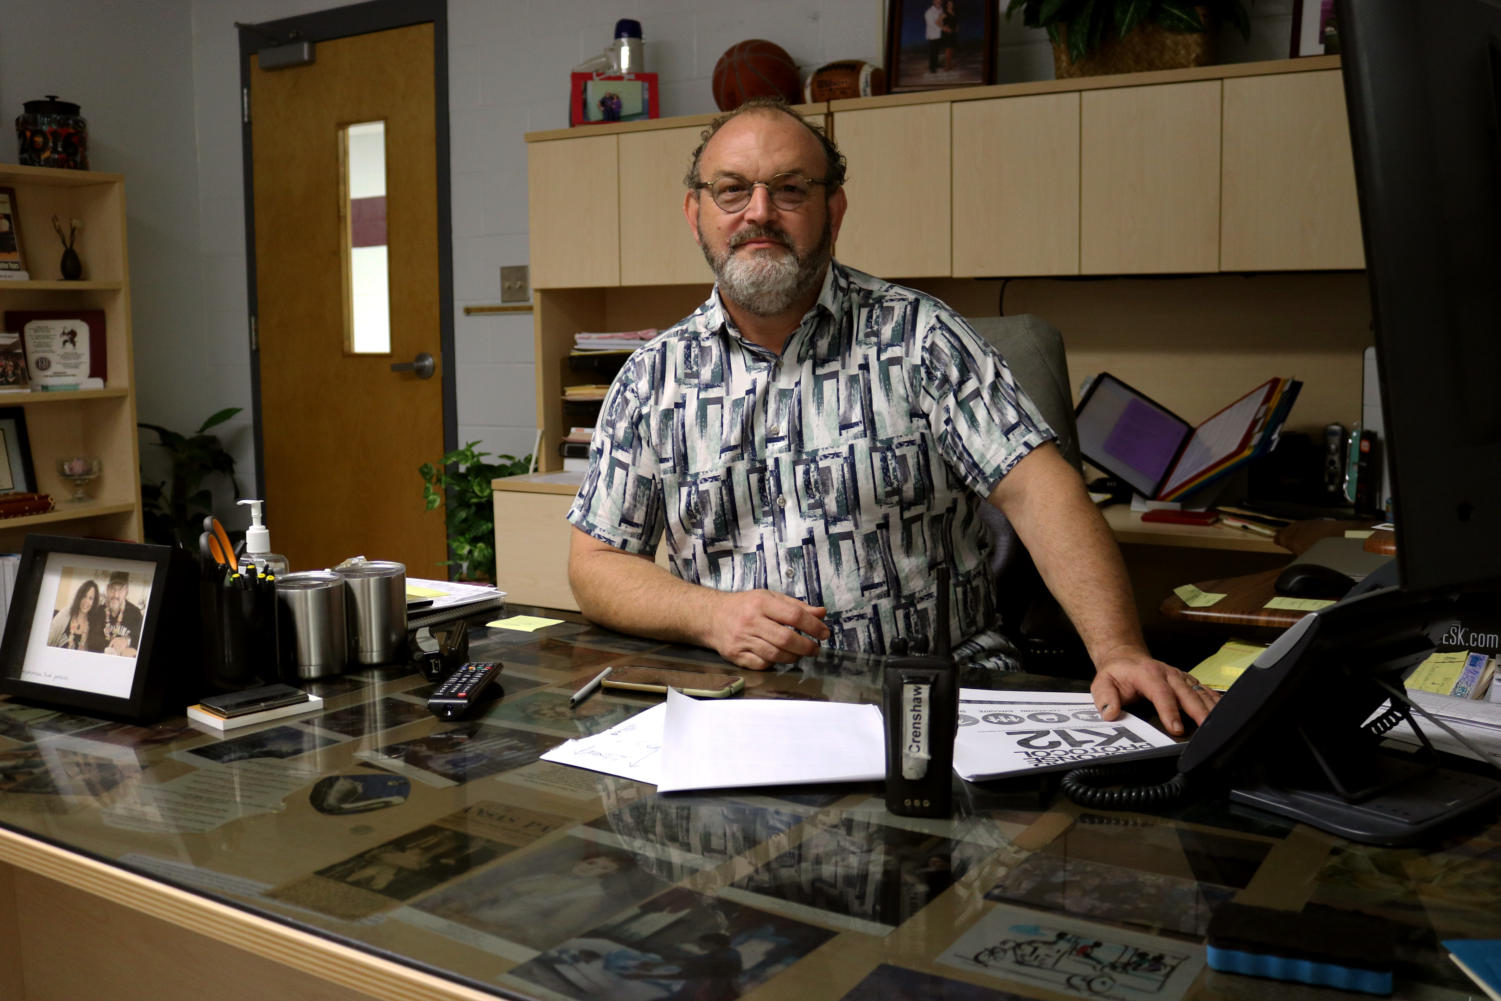 Principal James Crenshaw sits at his office desk on Feb. 21. Beginning in the first grade, he spent three years in a wheelchair due to a leg condition.